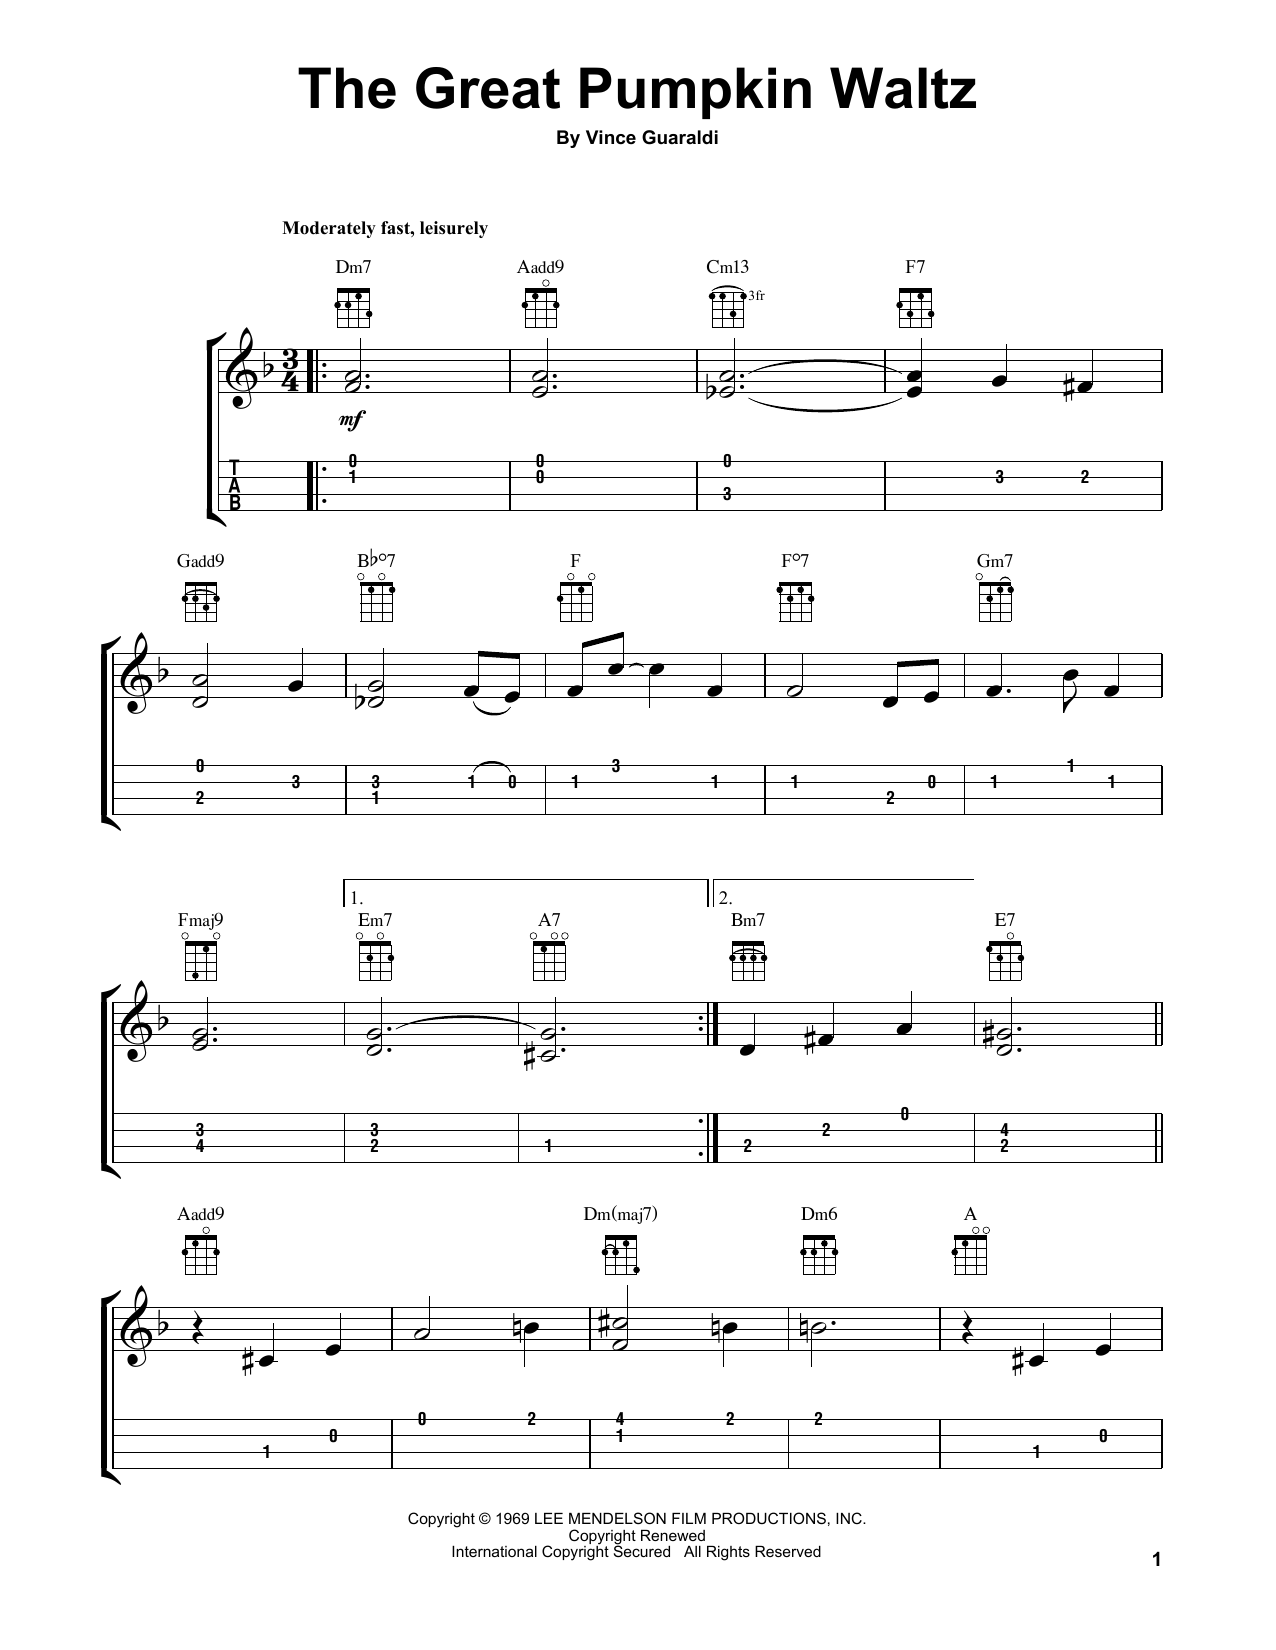 Tablature guitare The Great Pumpkin Waltz de Vince Guaraldi - Ukulele